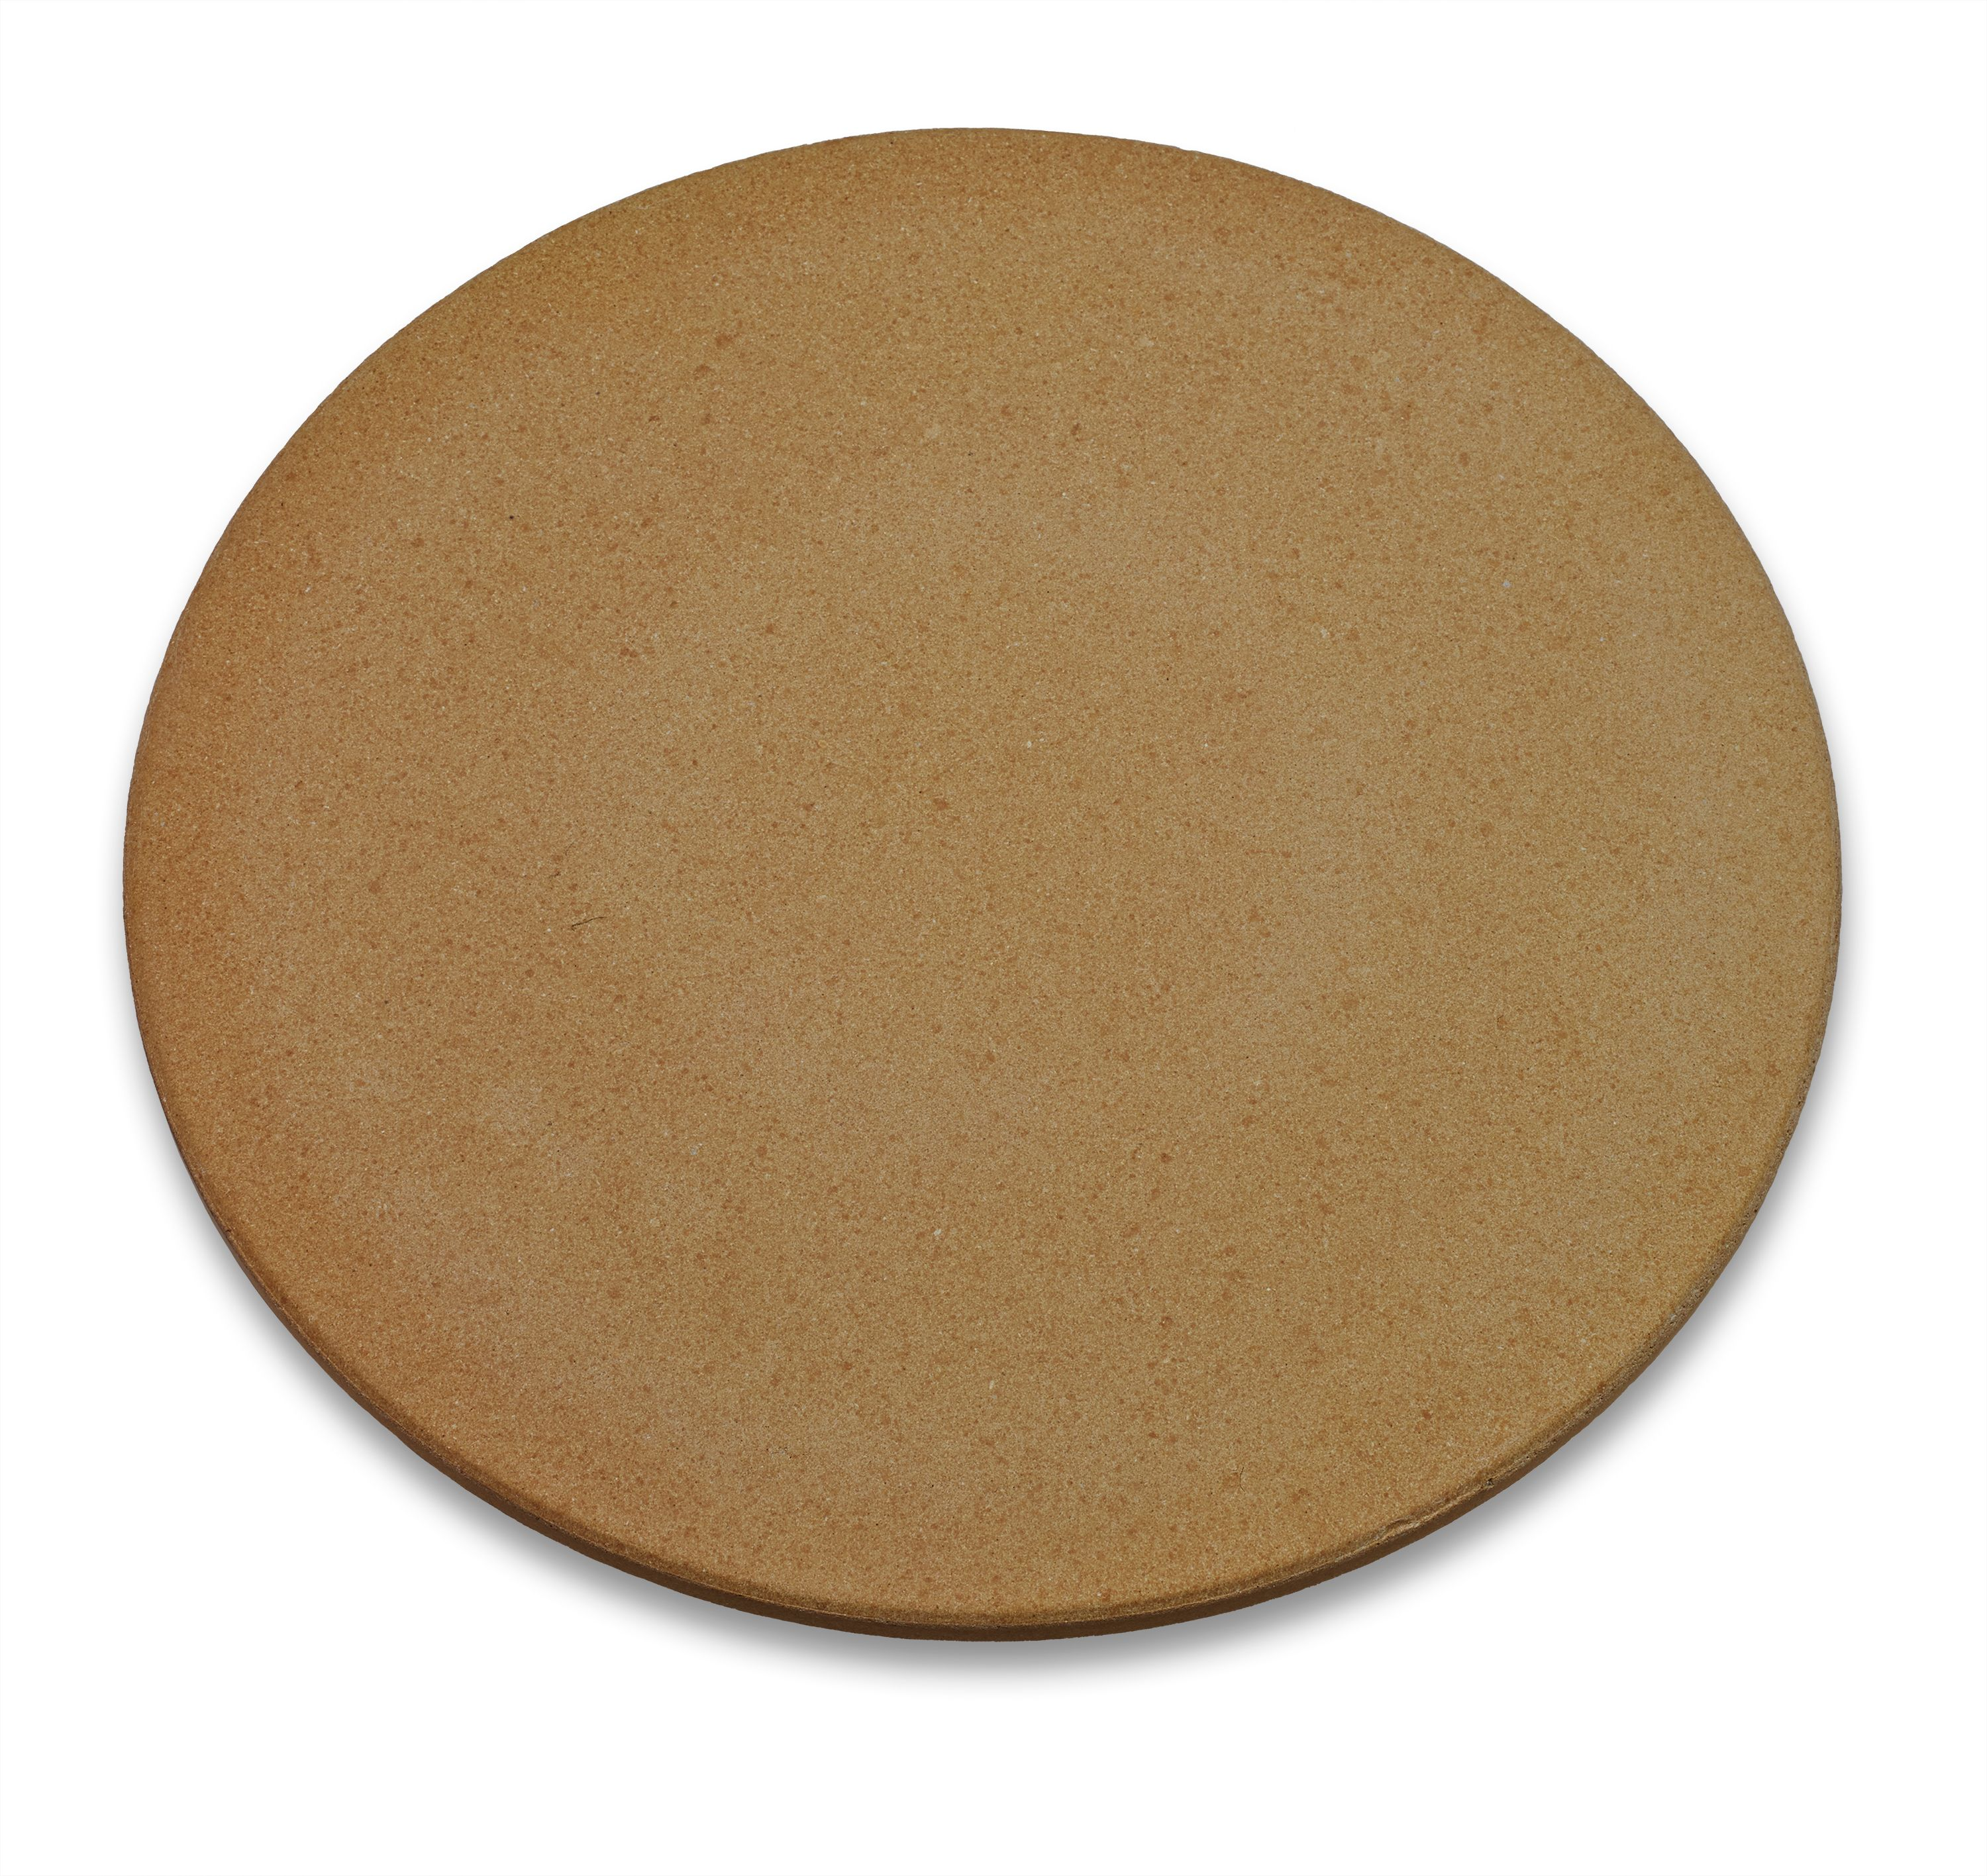 "Honey Can Do 16"" Lead-Free Clay Round Oven Pizza Stone by Honey Can Do"